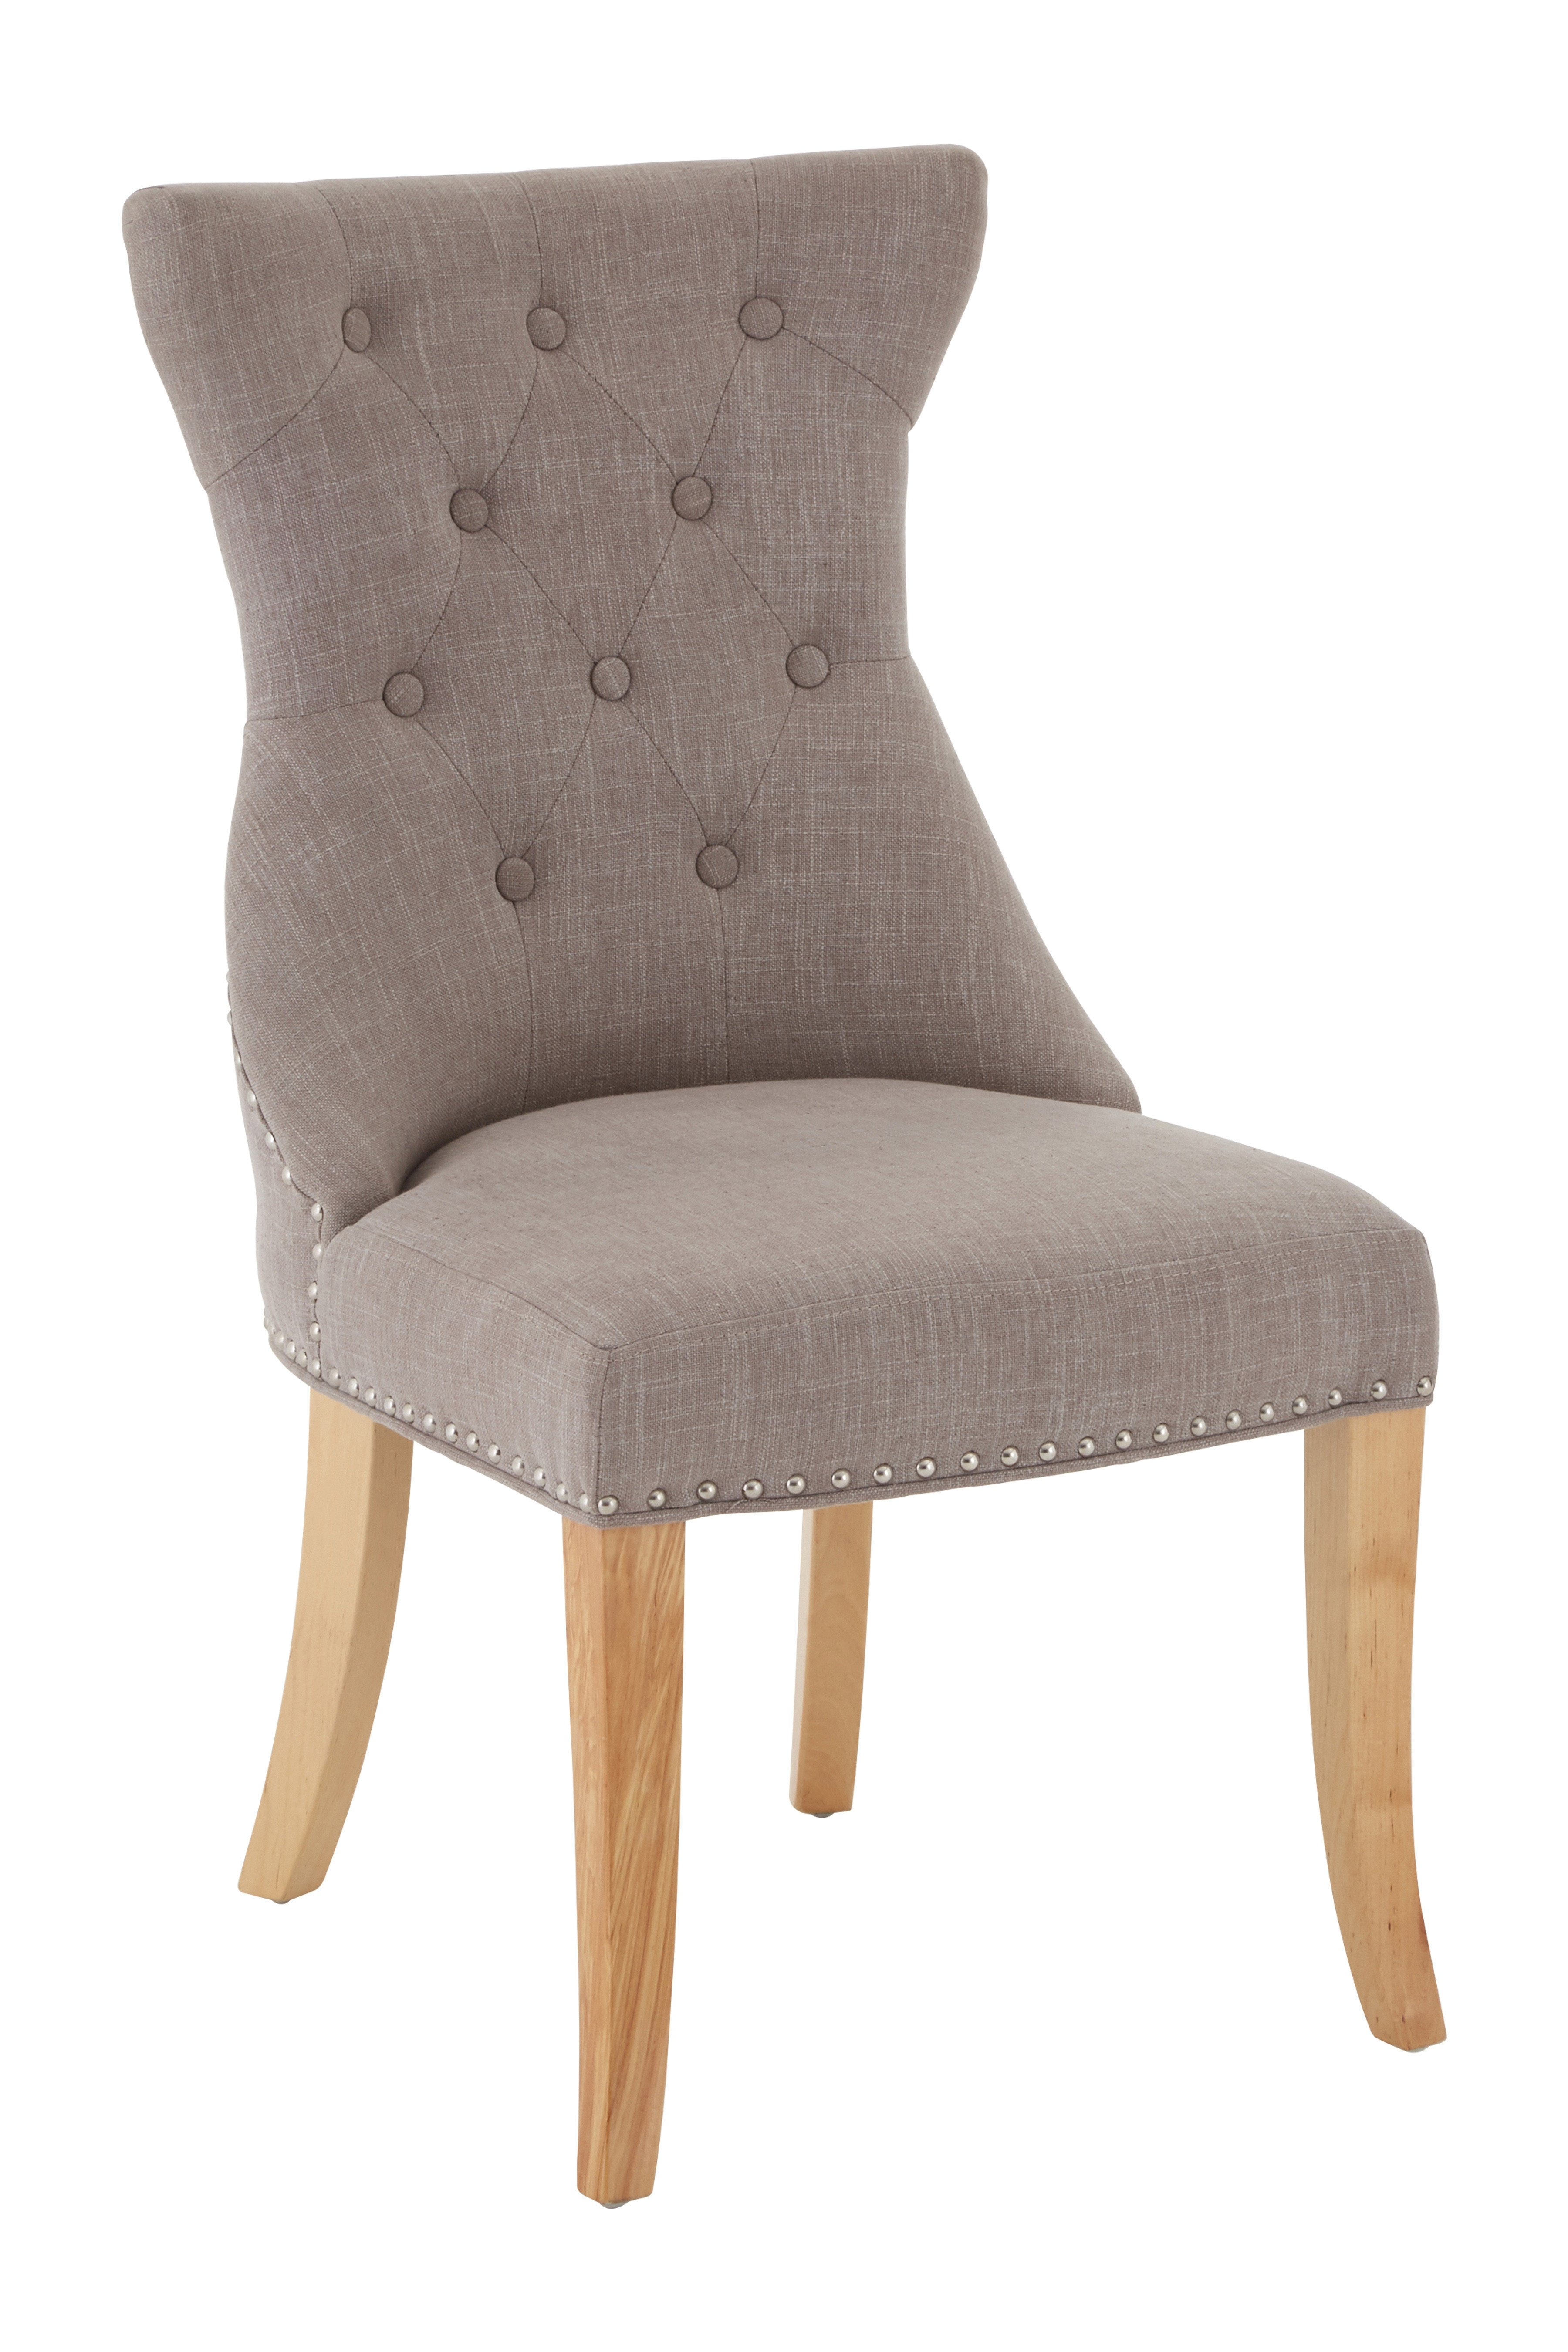 Kent Dining Chairs Regarding Latest Charlton Home Kent Dining Chair (View 3 of 20)